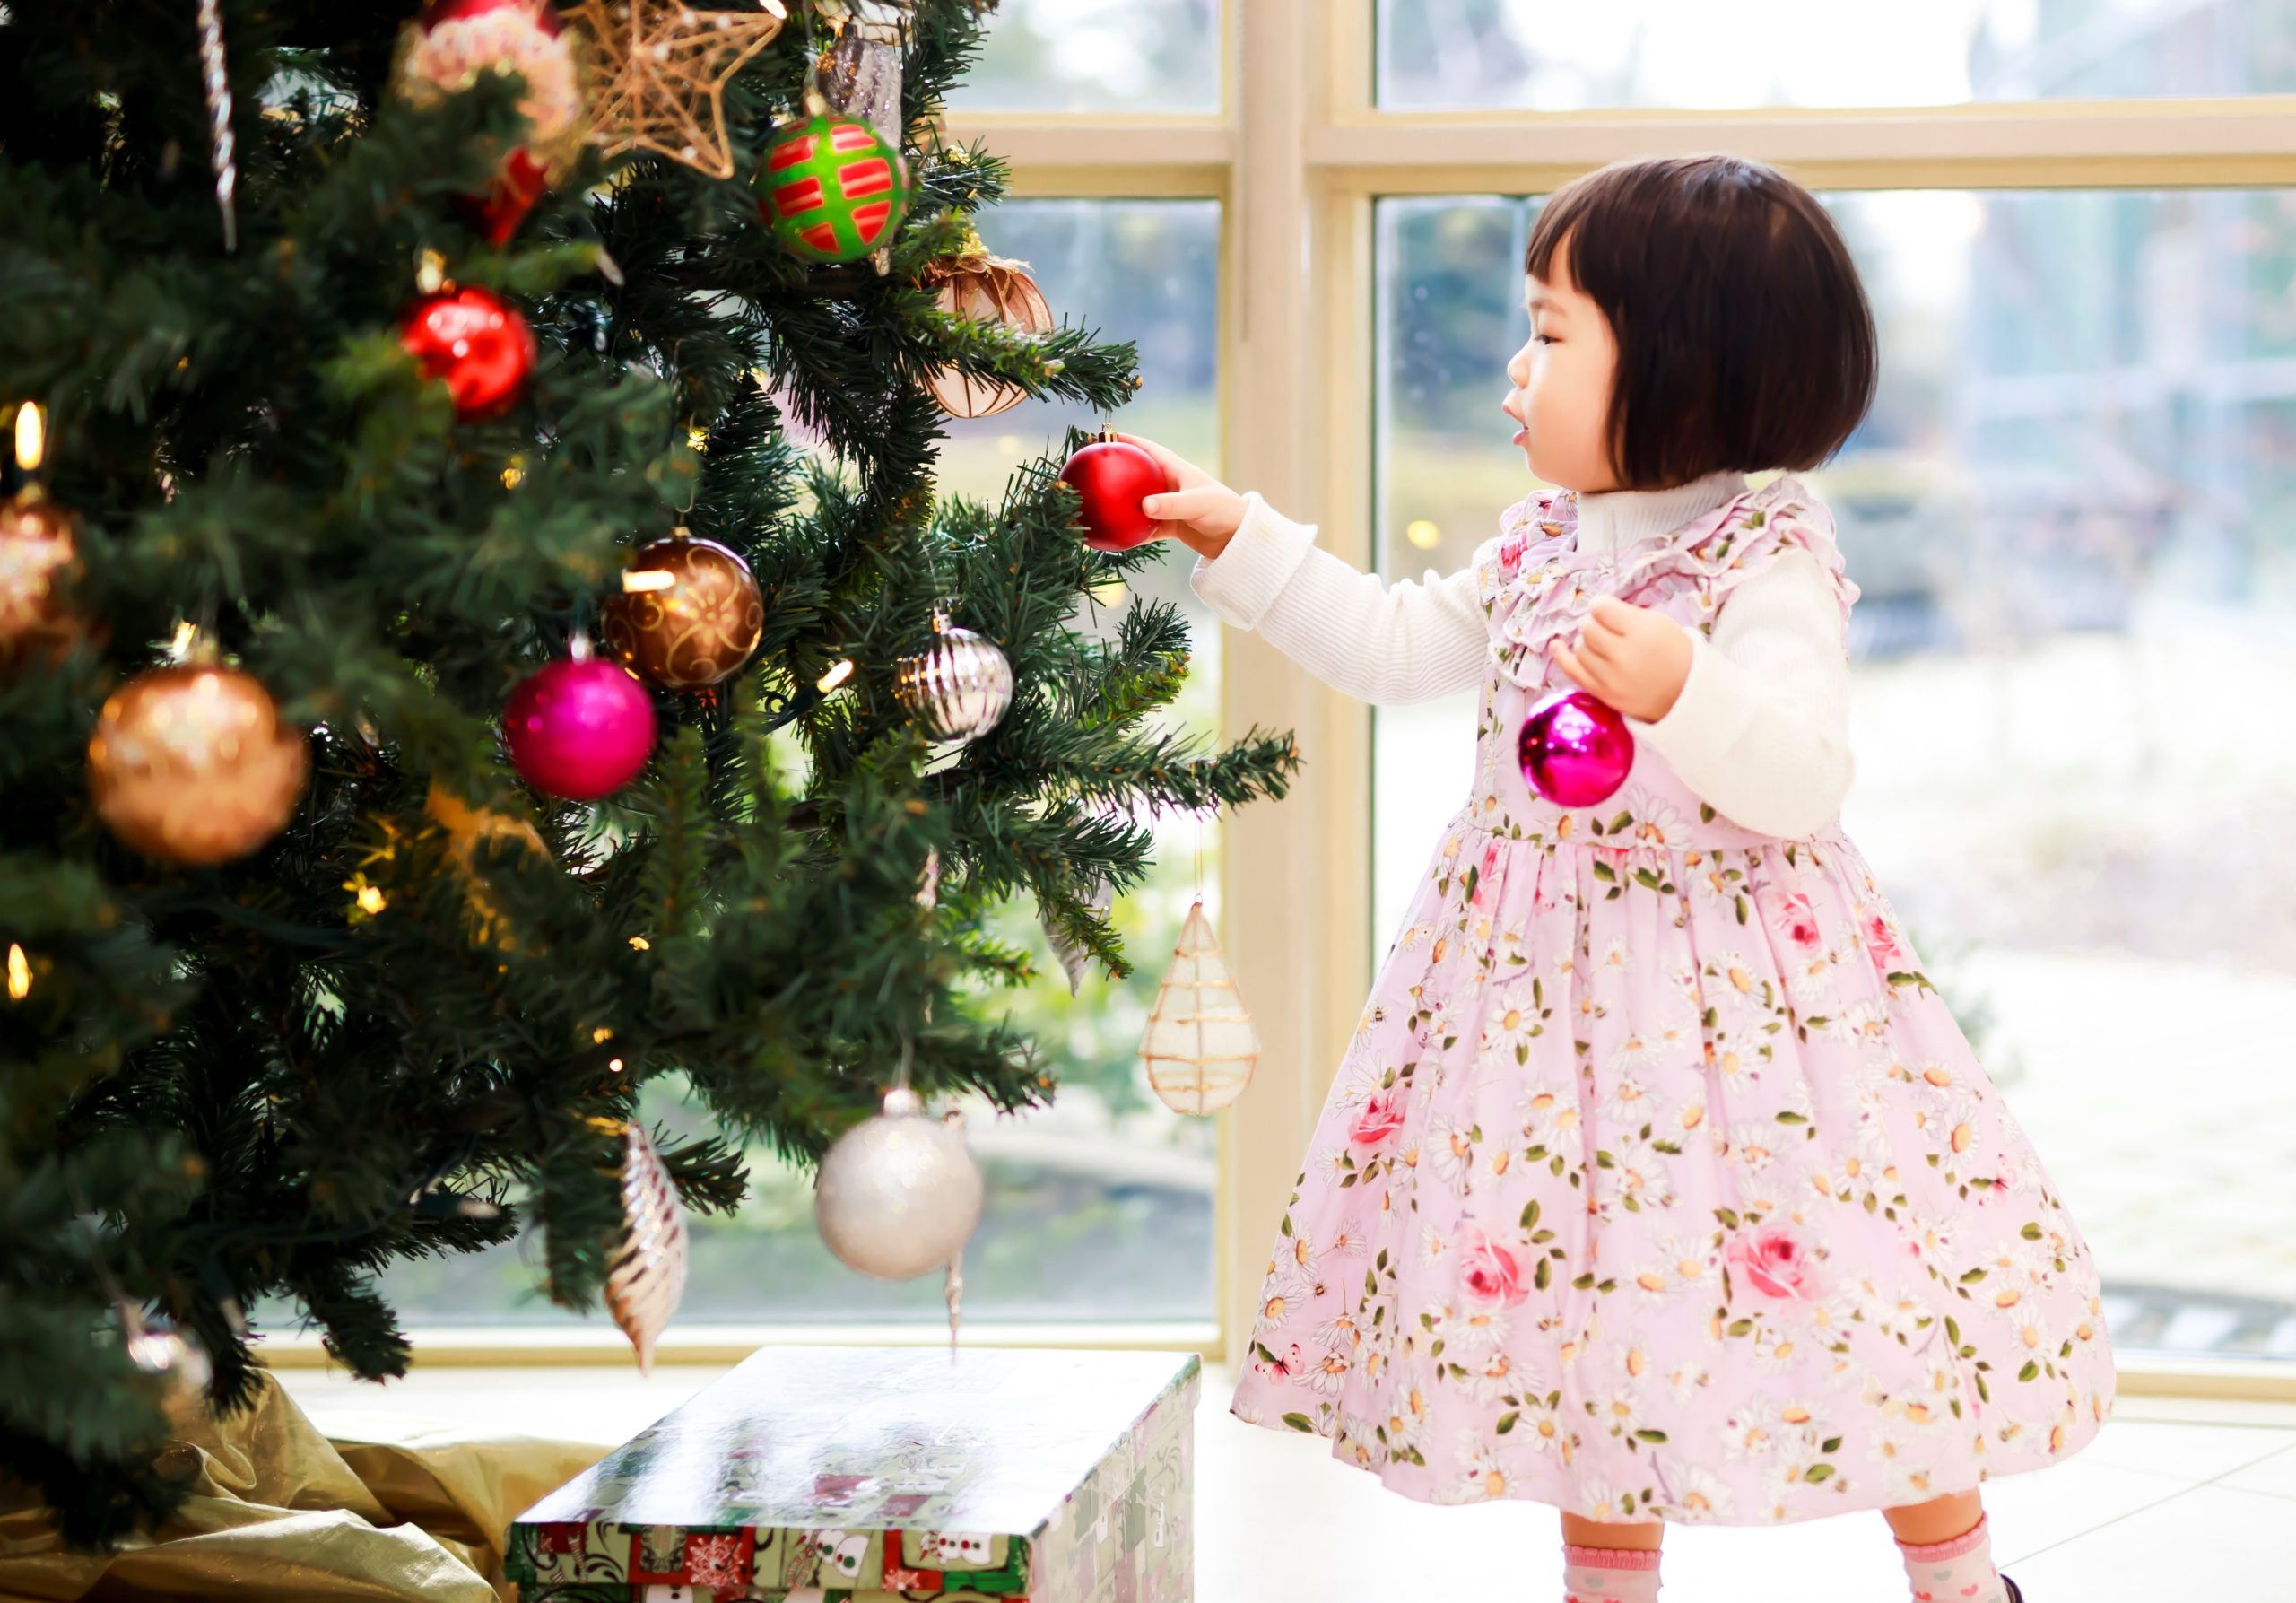 SEND at Christmas: a small child in a pink dress puts a red bauble onto a Christmas tree